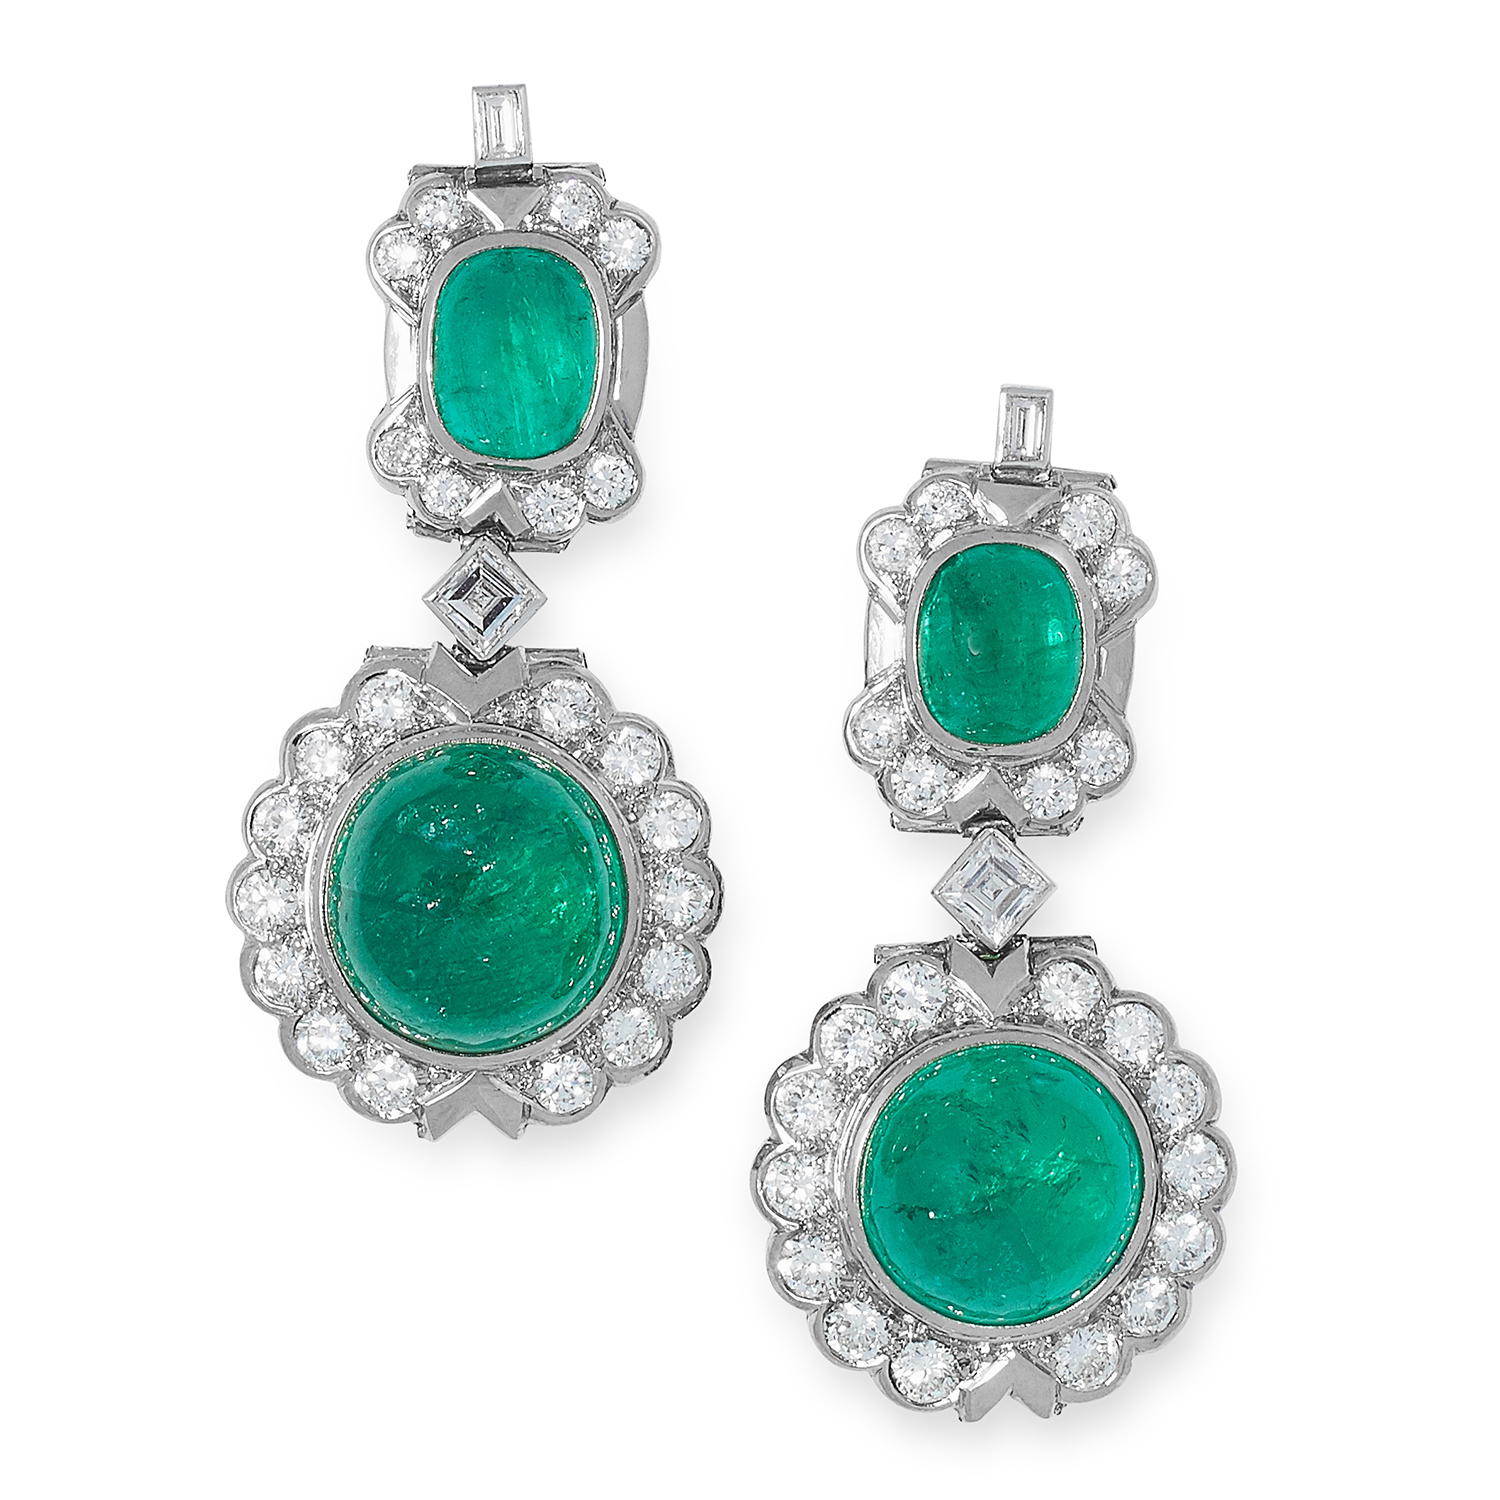 Los 47 - A PAIR OF EMERALD AND DIAMOND EARRINGS set with cabochon emeralds of 11.91, 9.71, 2.52 and 2.29